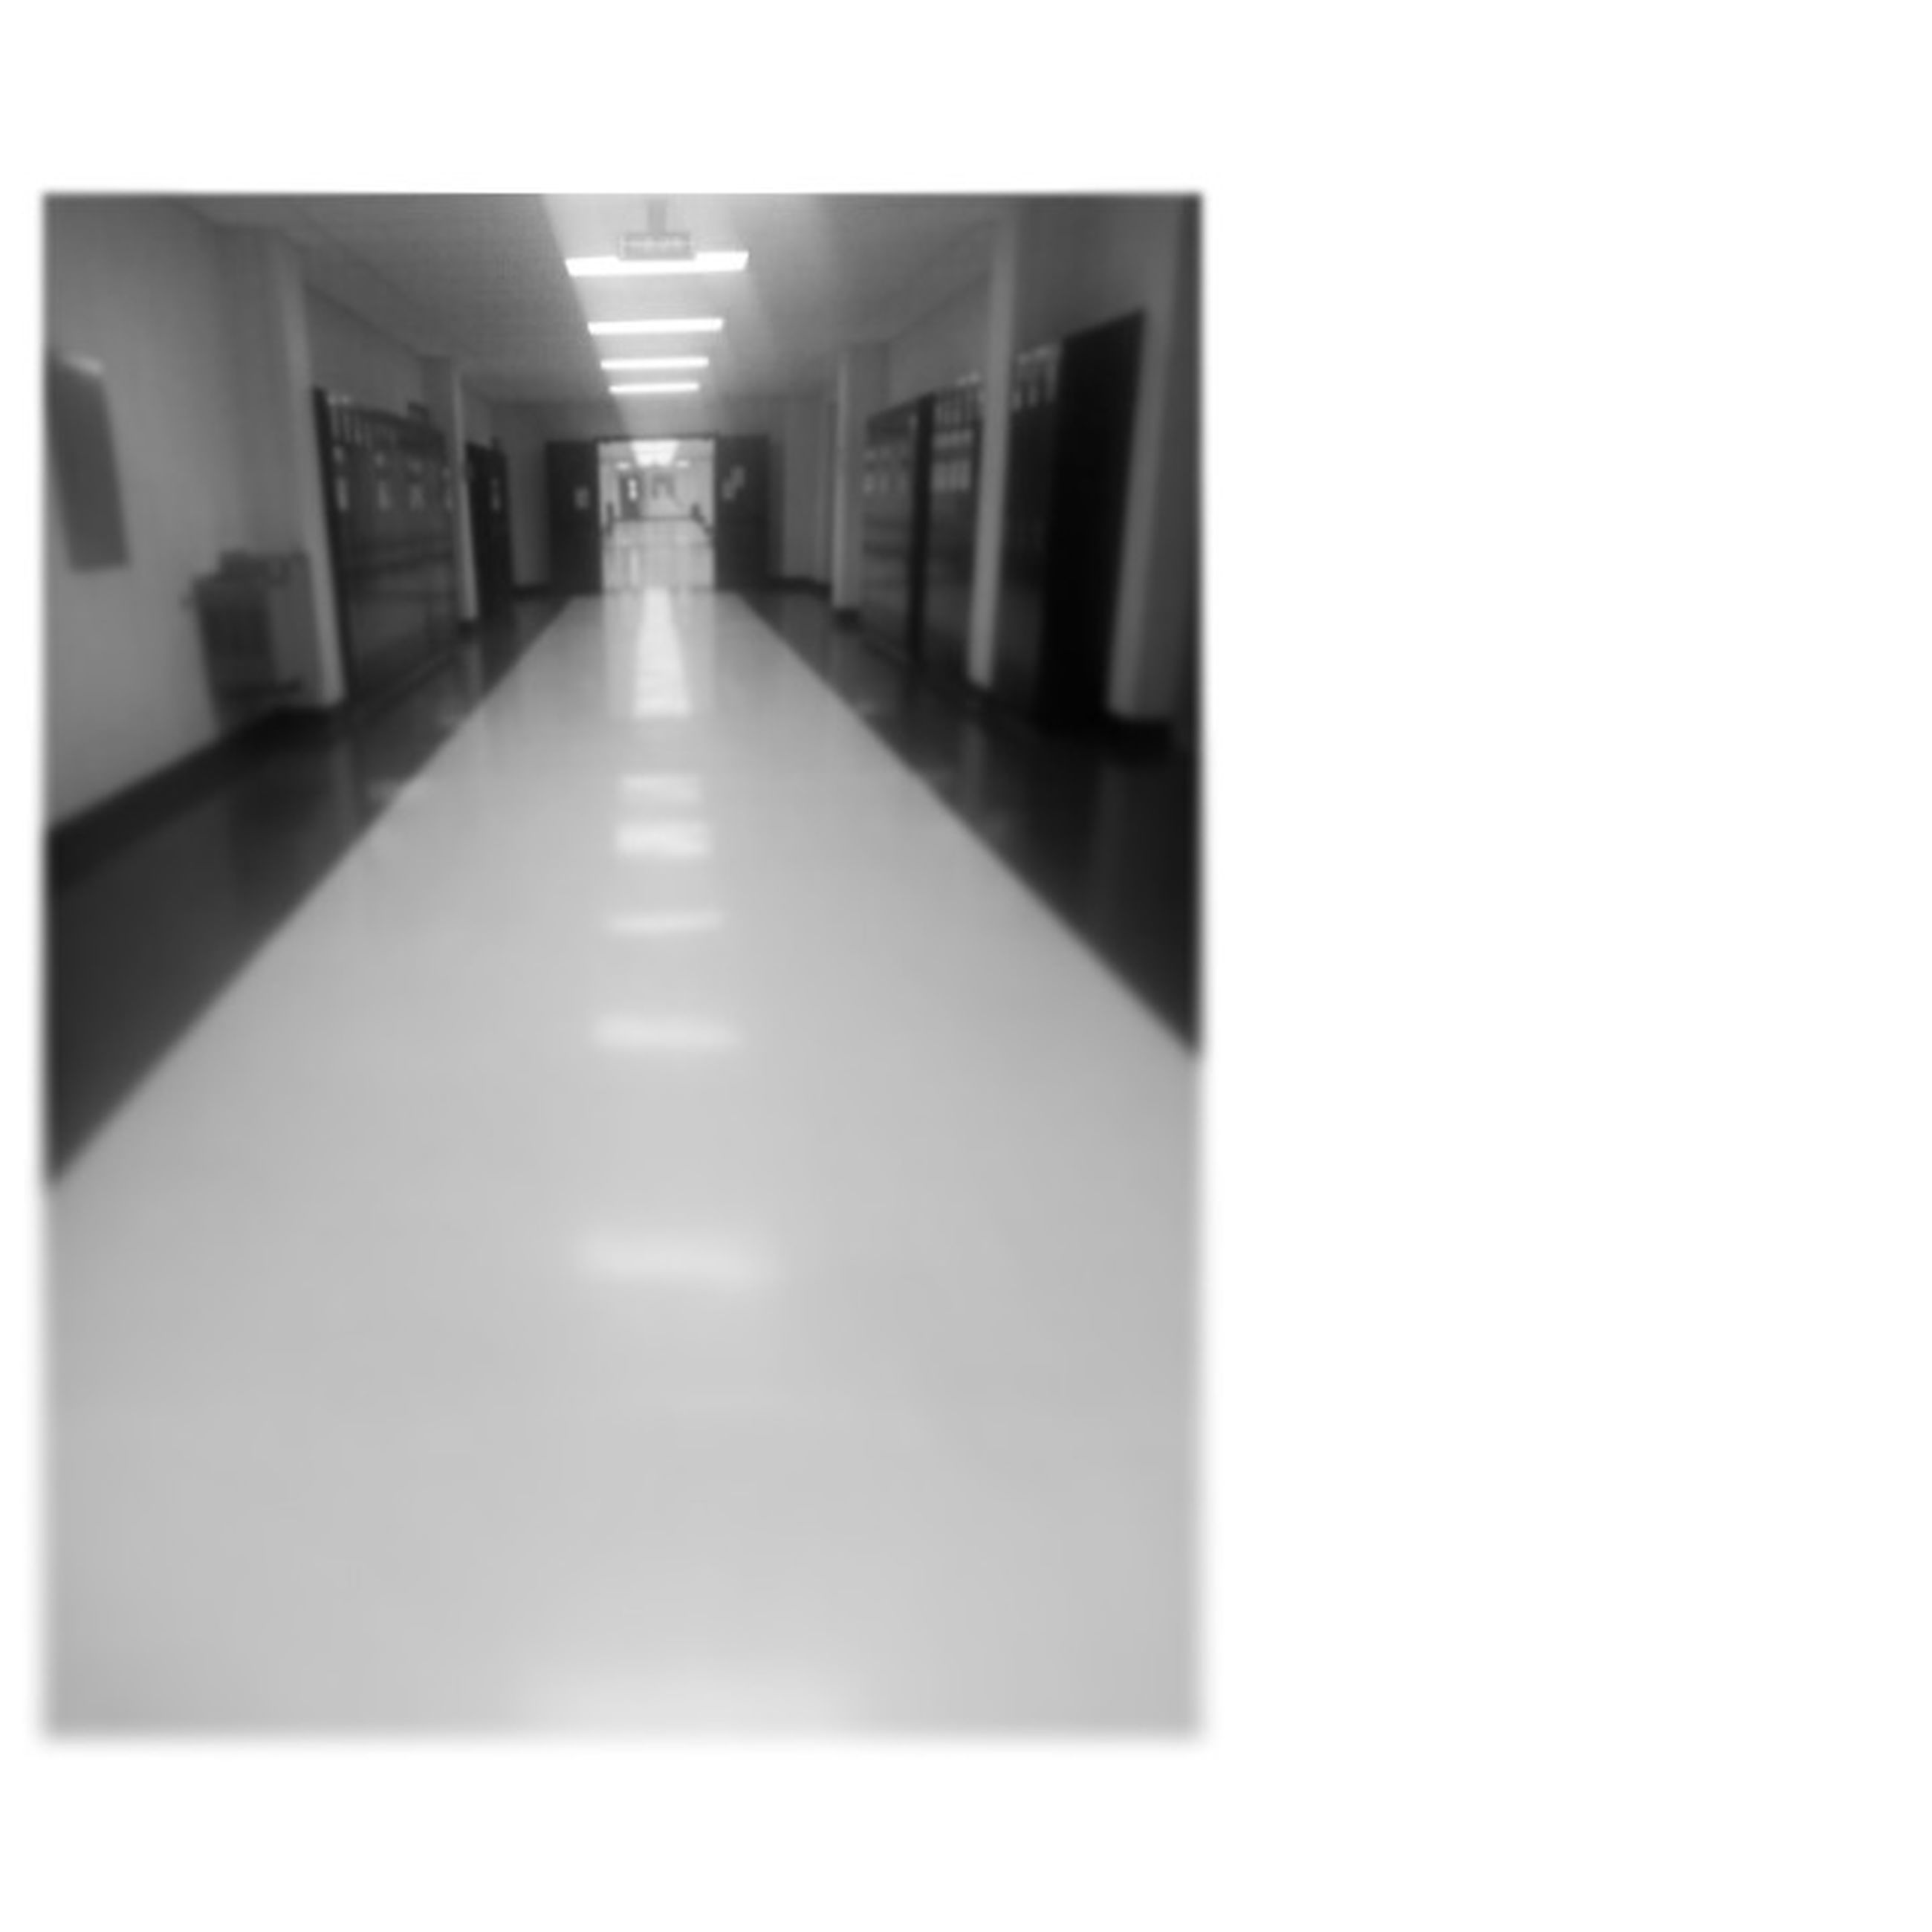 architecture, built structure, transfer print, the way forward, building exterior, diminishing perspective, auto post production filter, corridor, indoors, empty, building, vanishing point, narrow, surface level, day, in a row, residential structure, no people, sunlight, residential building